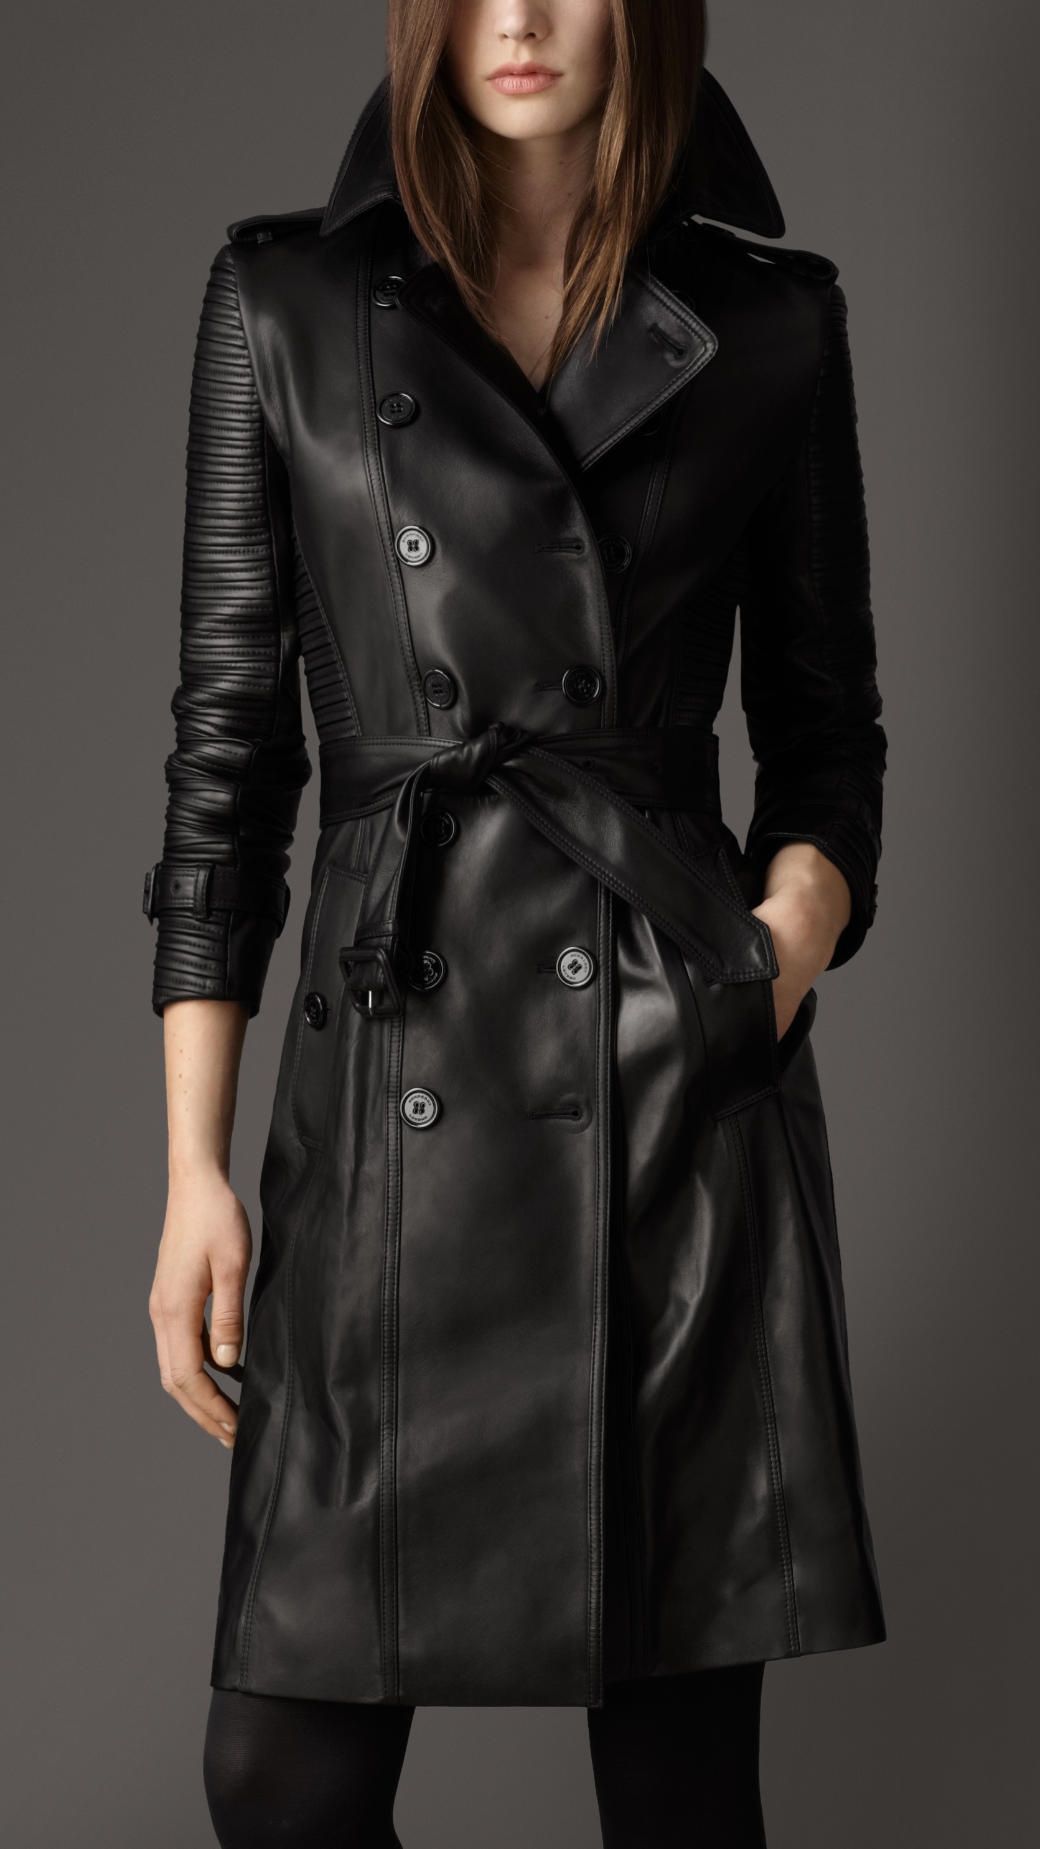 Leather trench coats for women